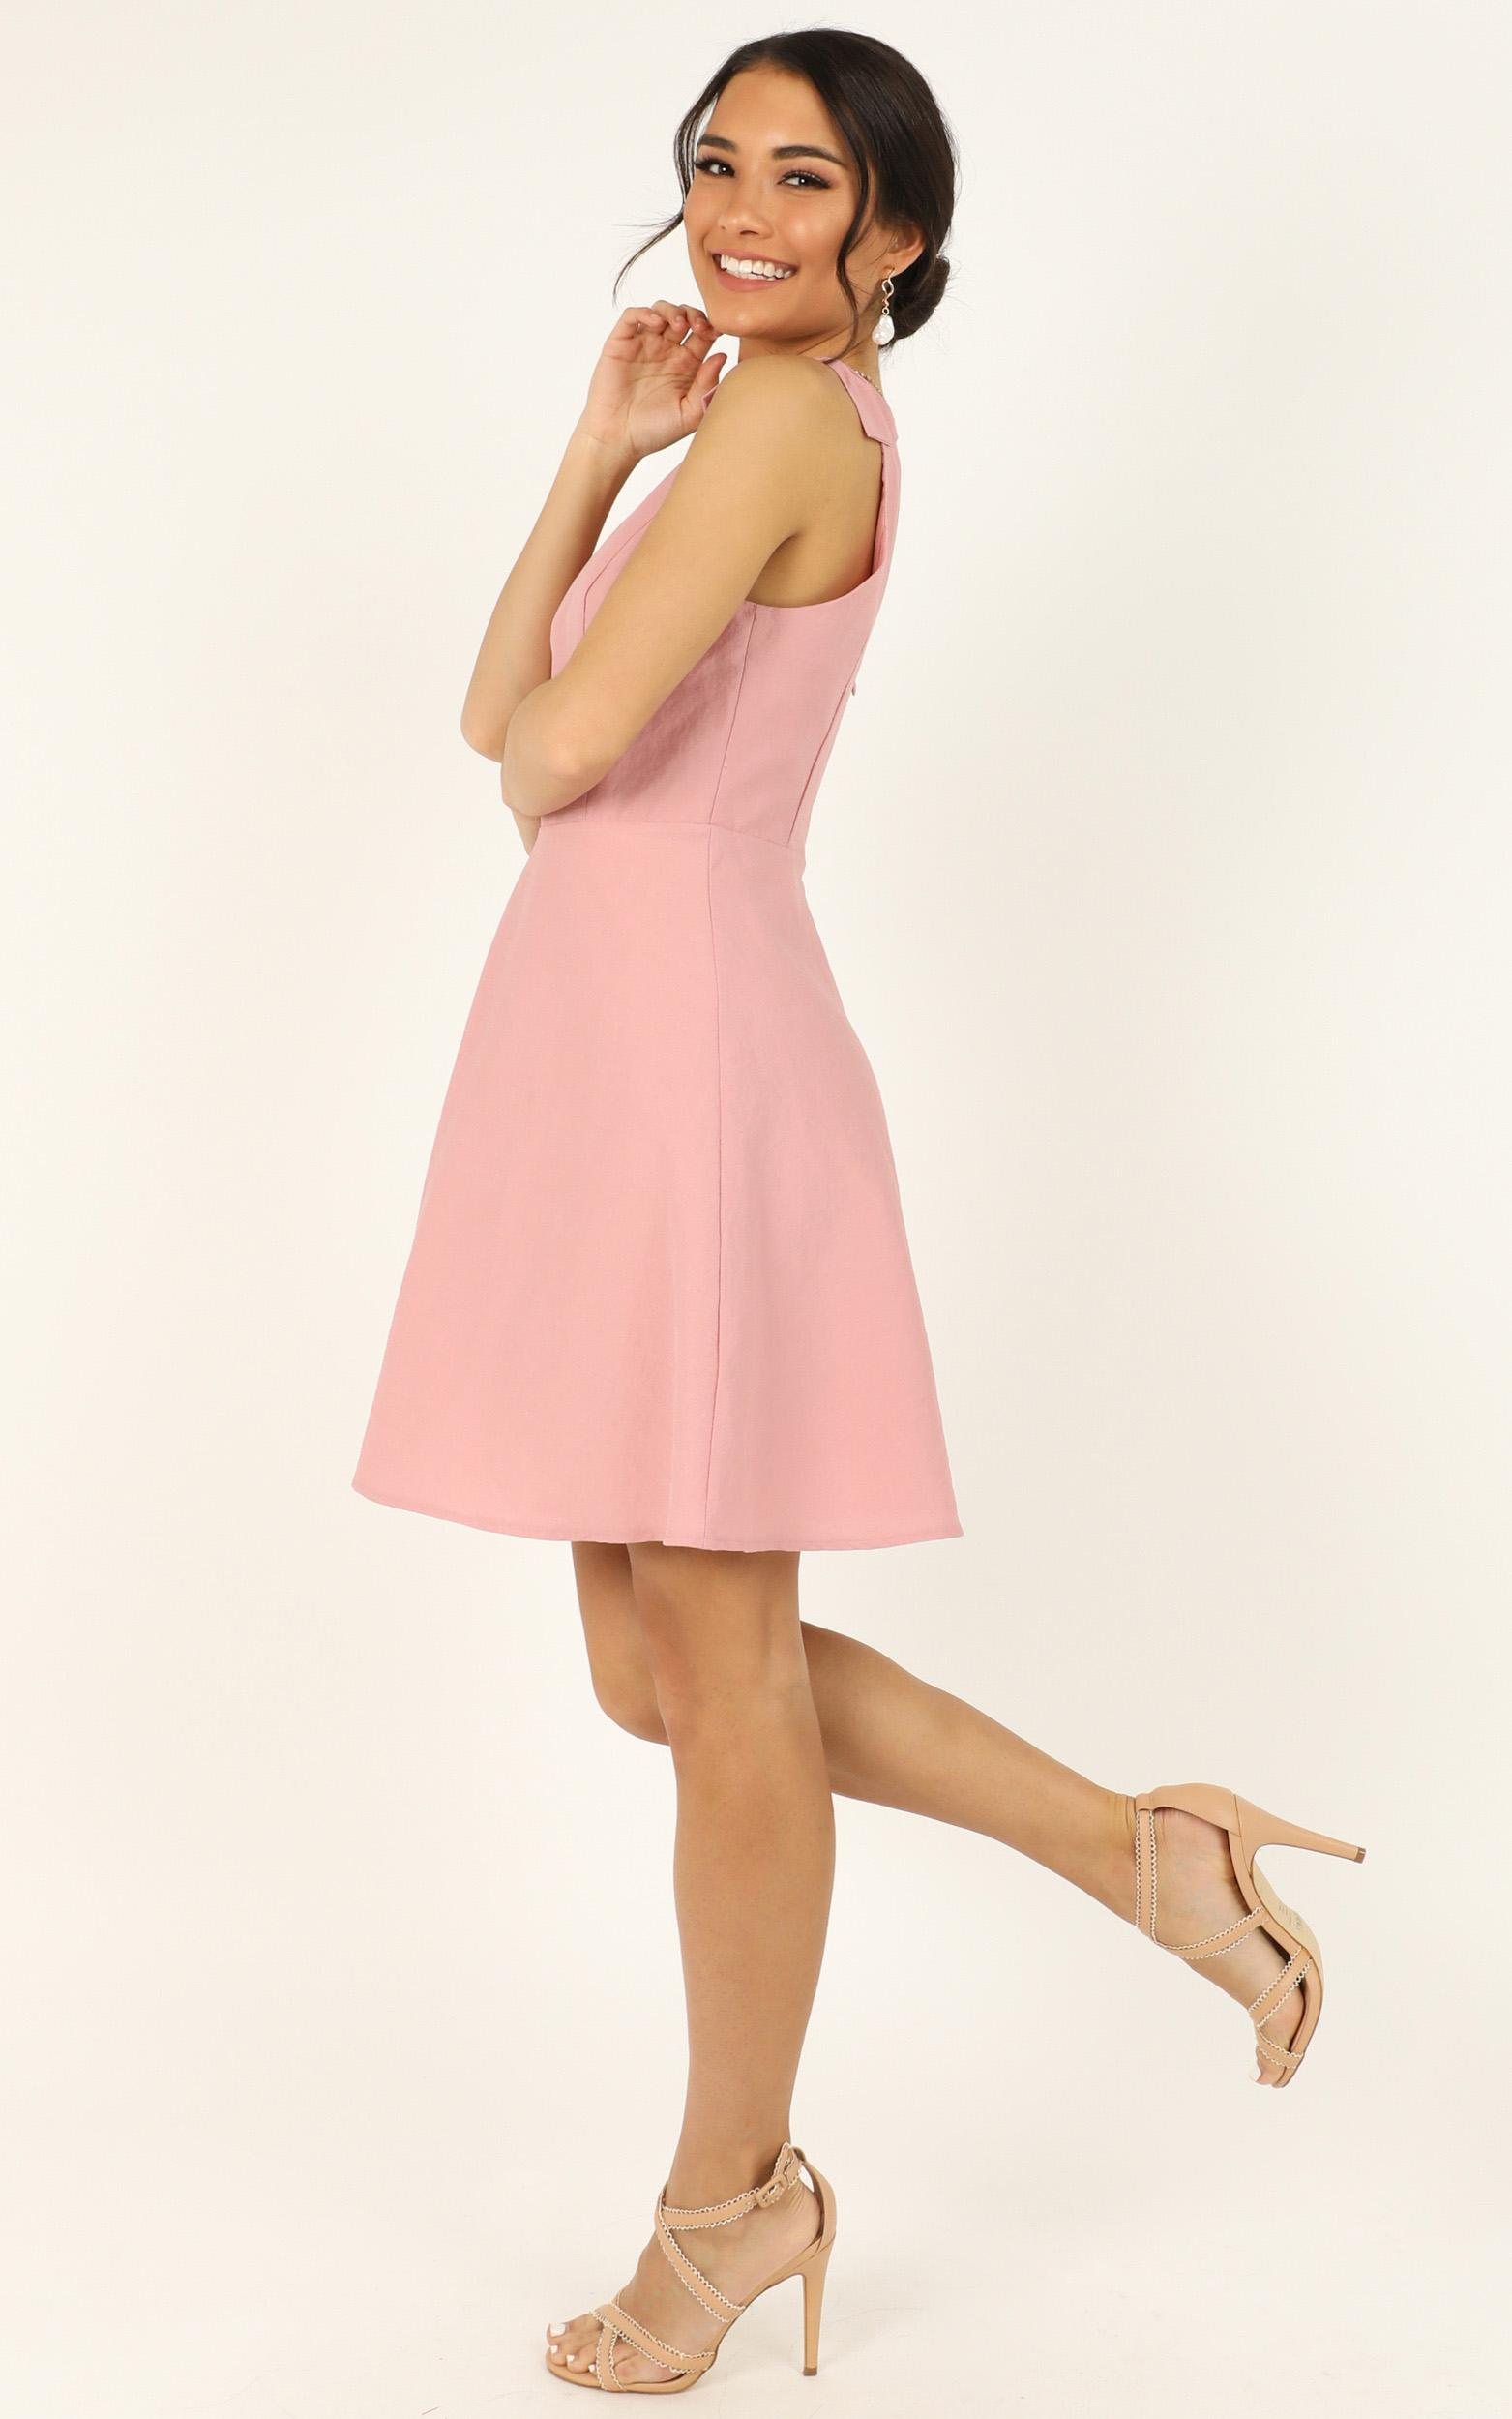 Sweetest Sunshine Dress in blush - 20 (XXXXL), Blush, hi-res image number null